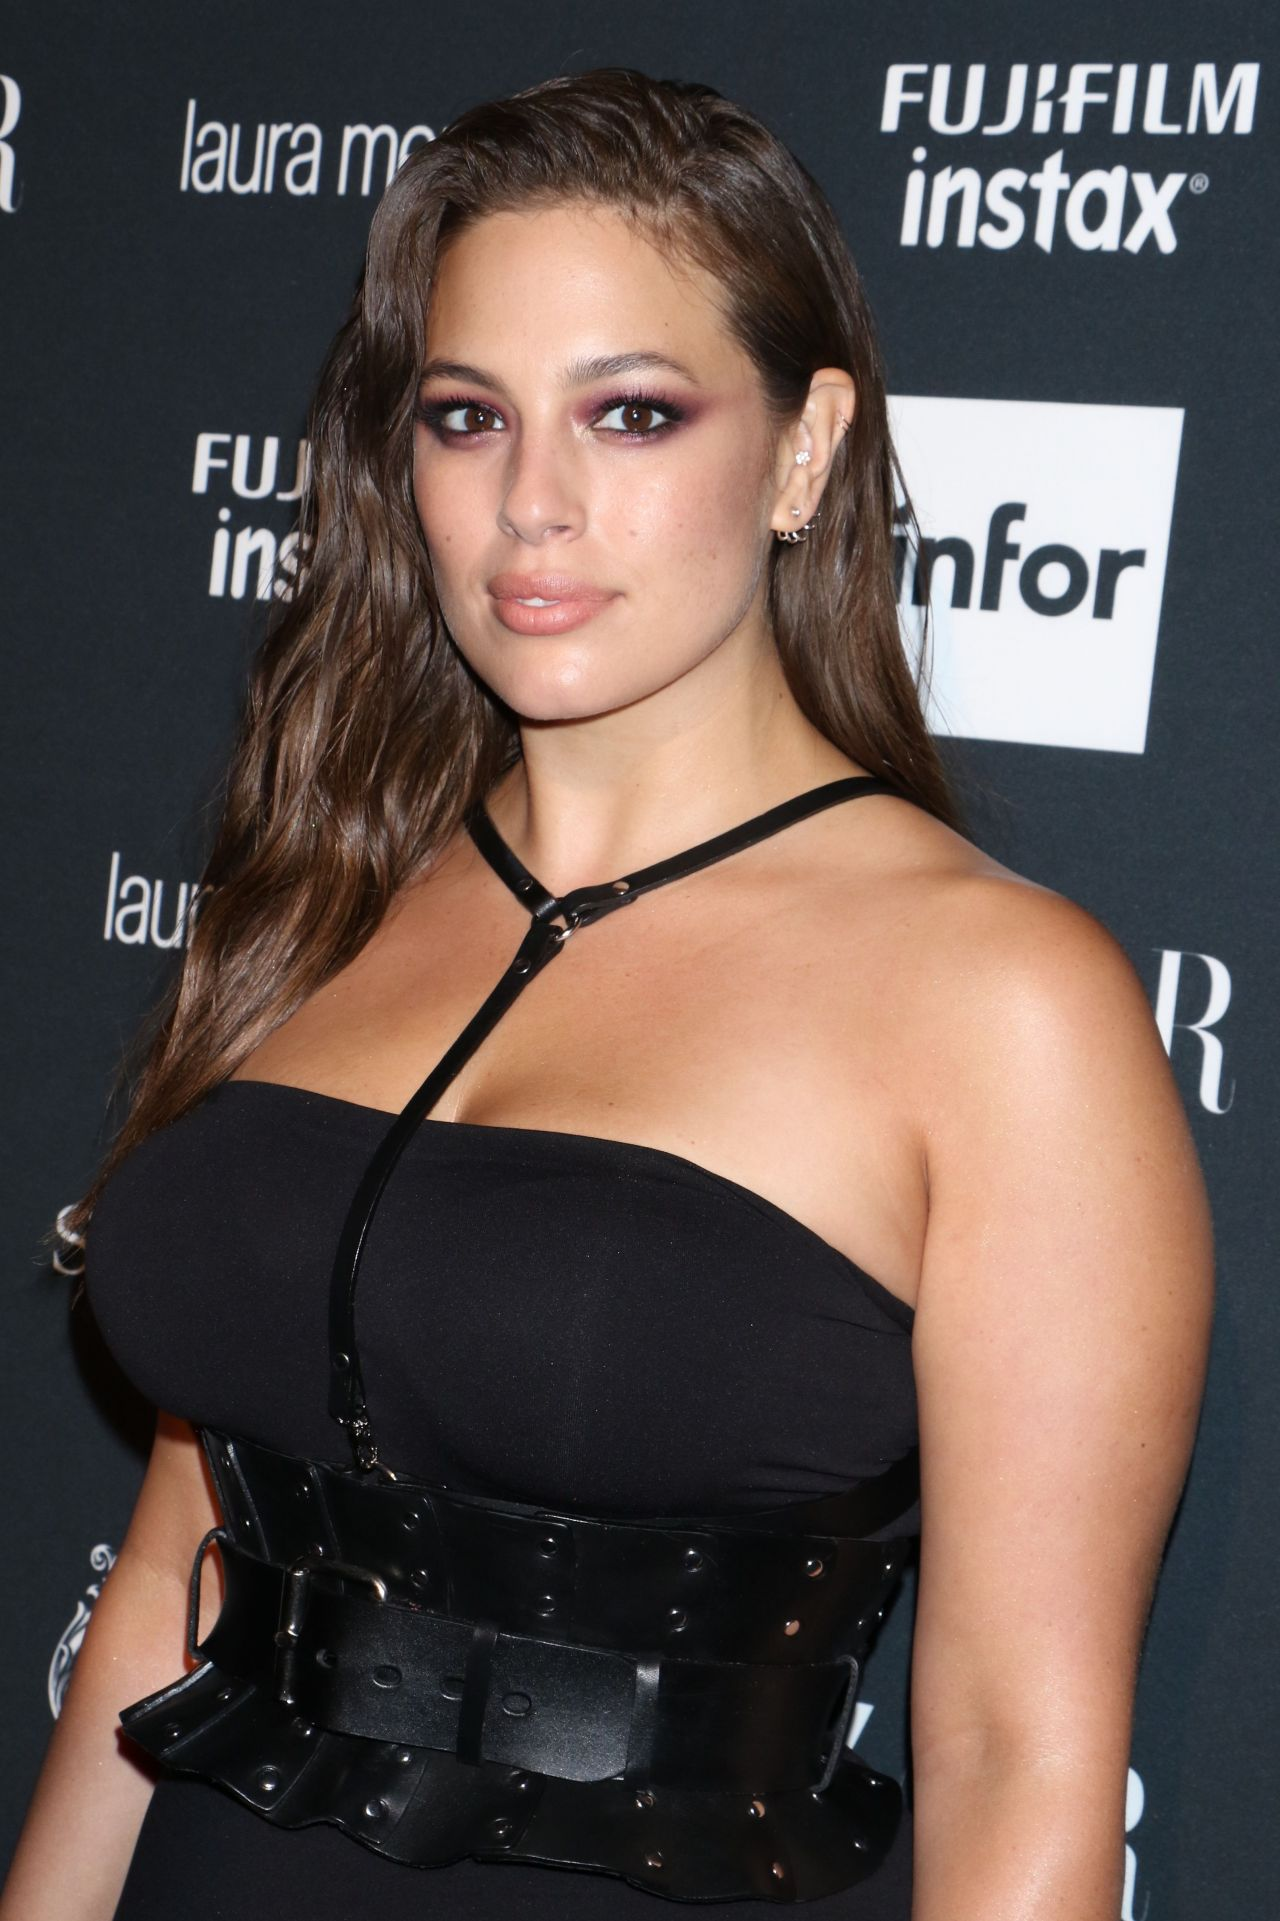 ashley graham - photo #1